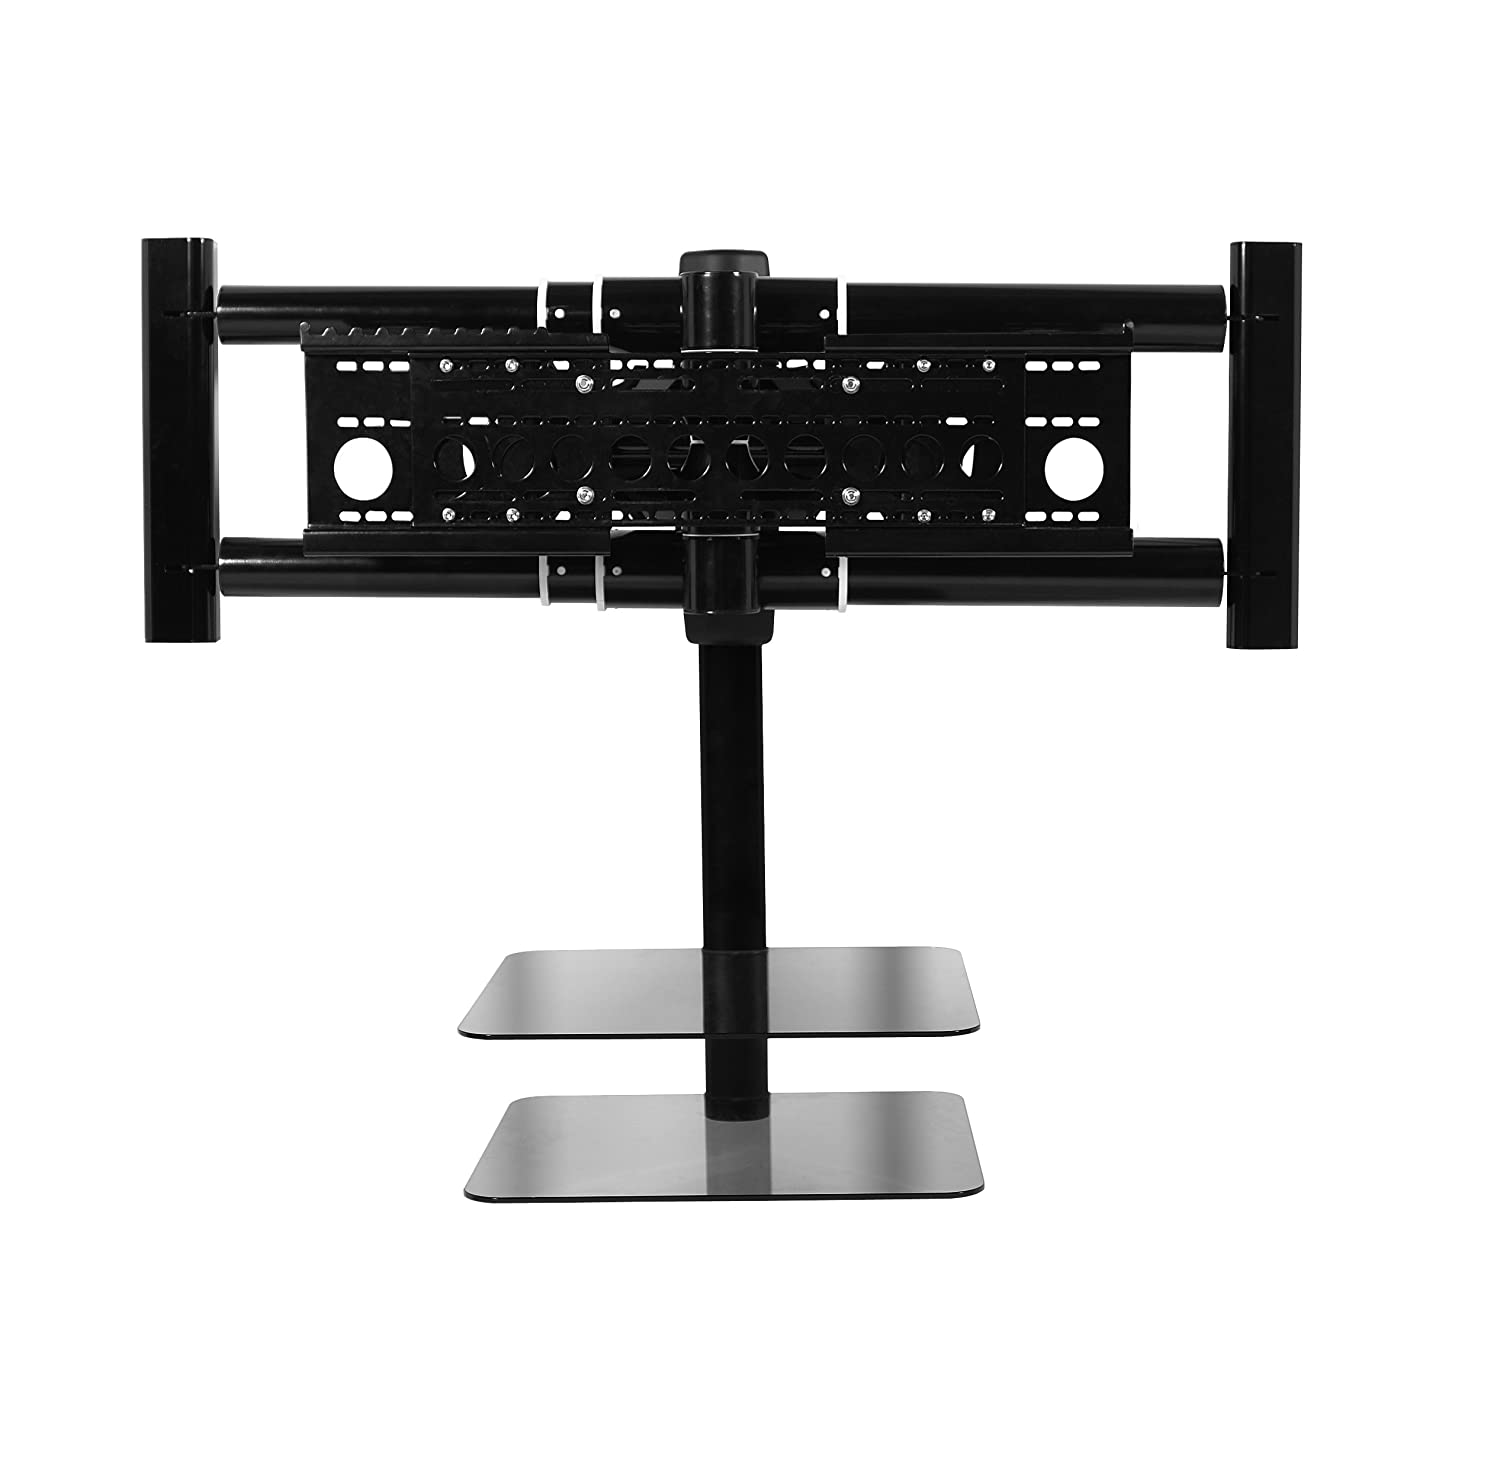 Avf Nxl4502pb Support Mural Orientable Inclinable Et Coulissant  # Meuble Tv Avec Support Mural